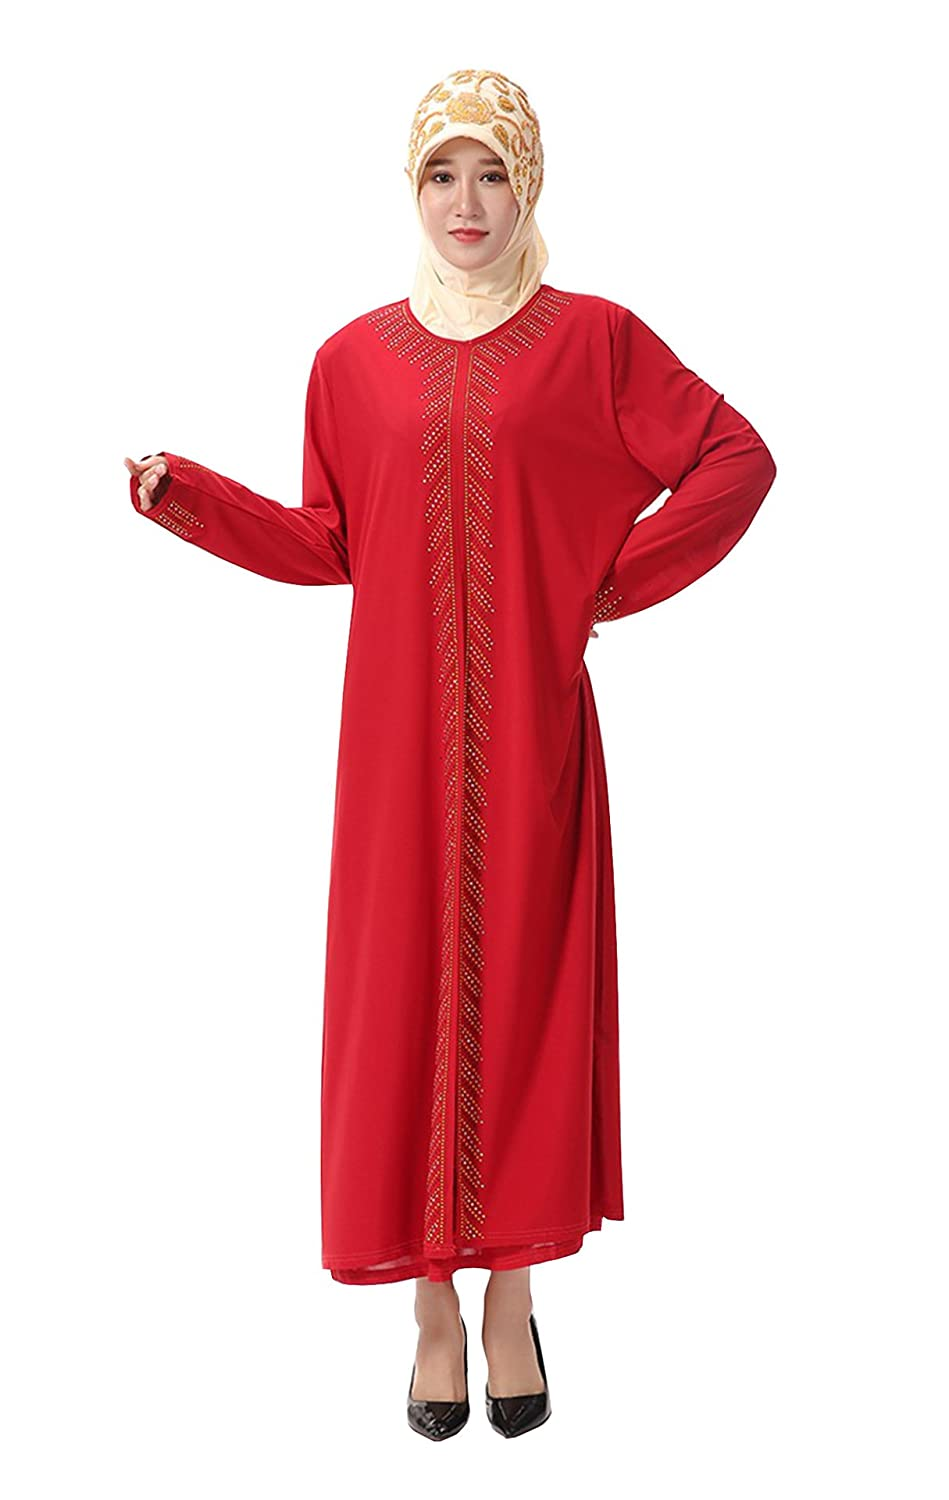 GladThink Women's Muslim Robe Long Sleeves Islamic Round Neck Dress